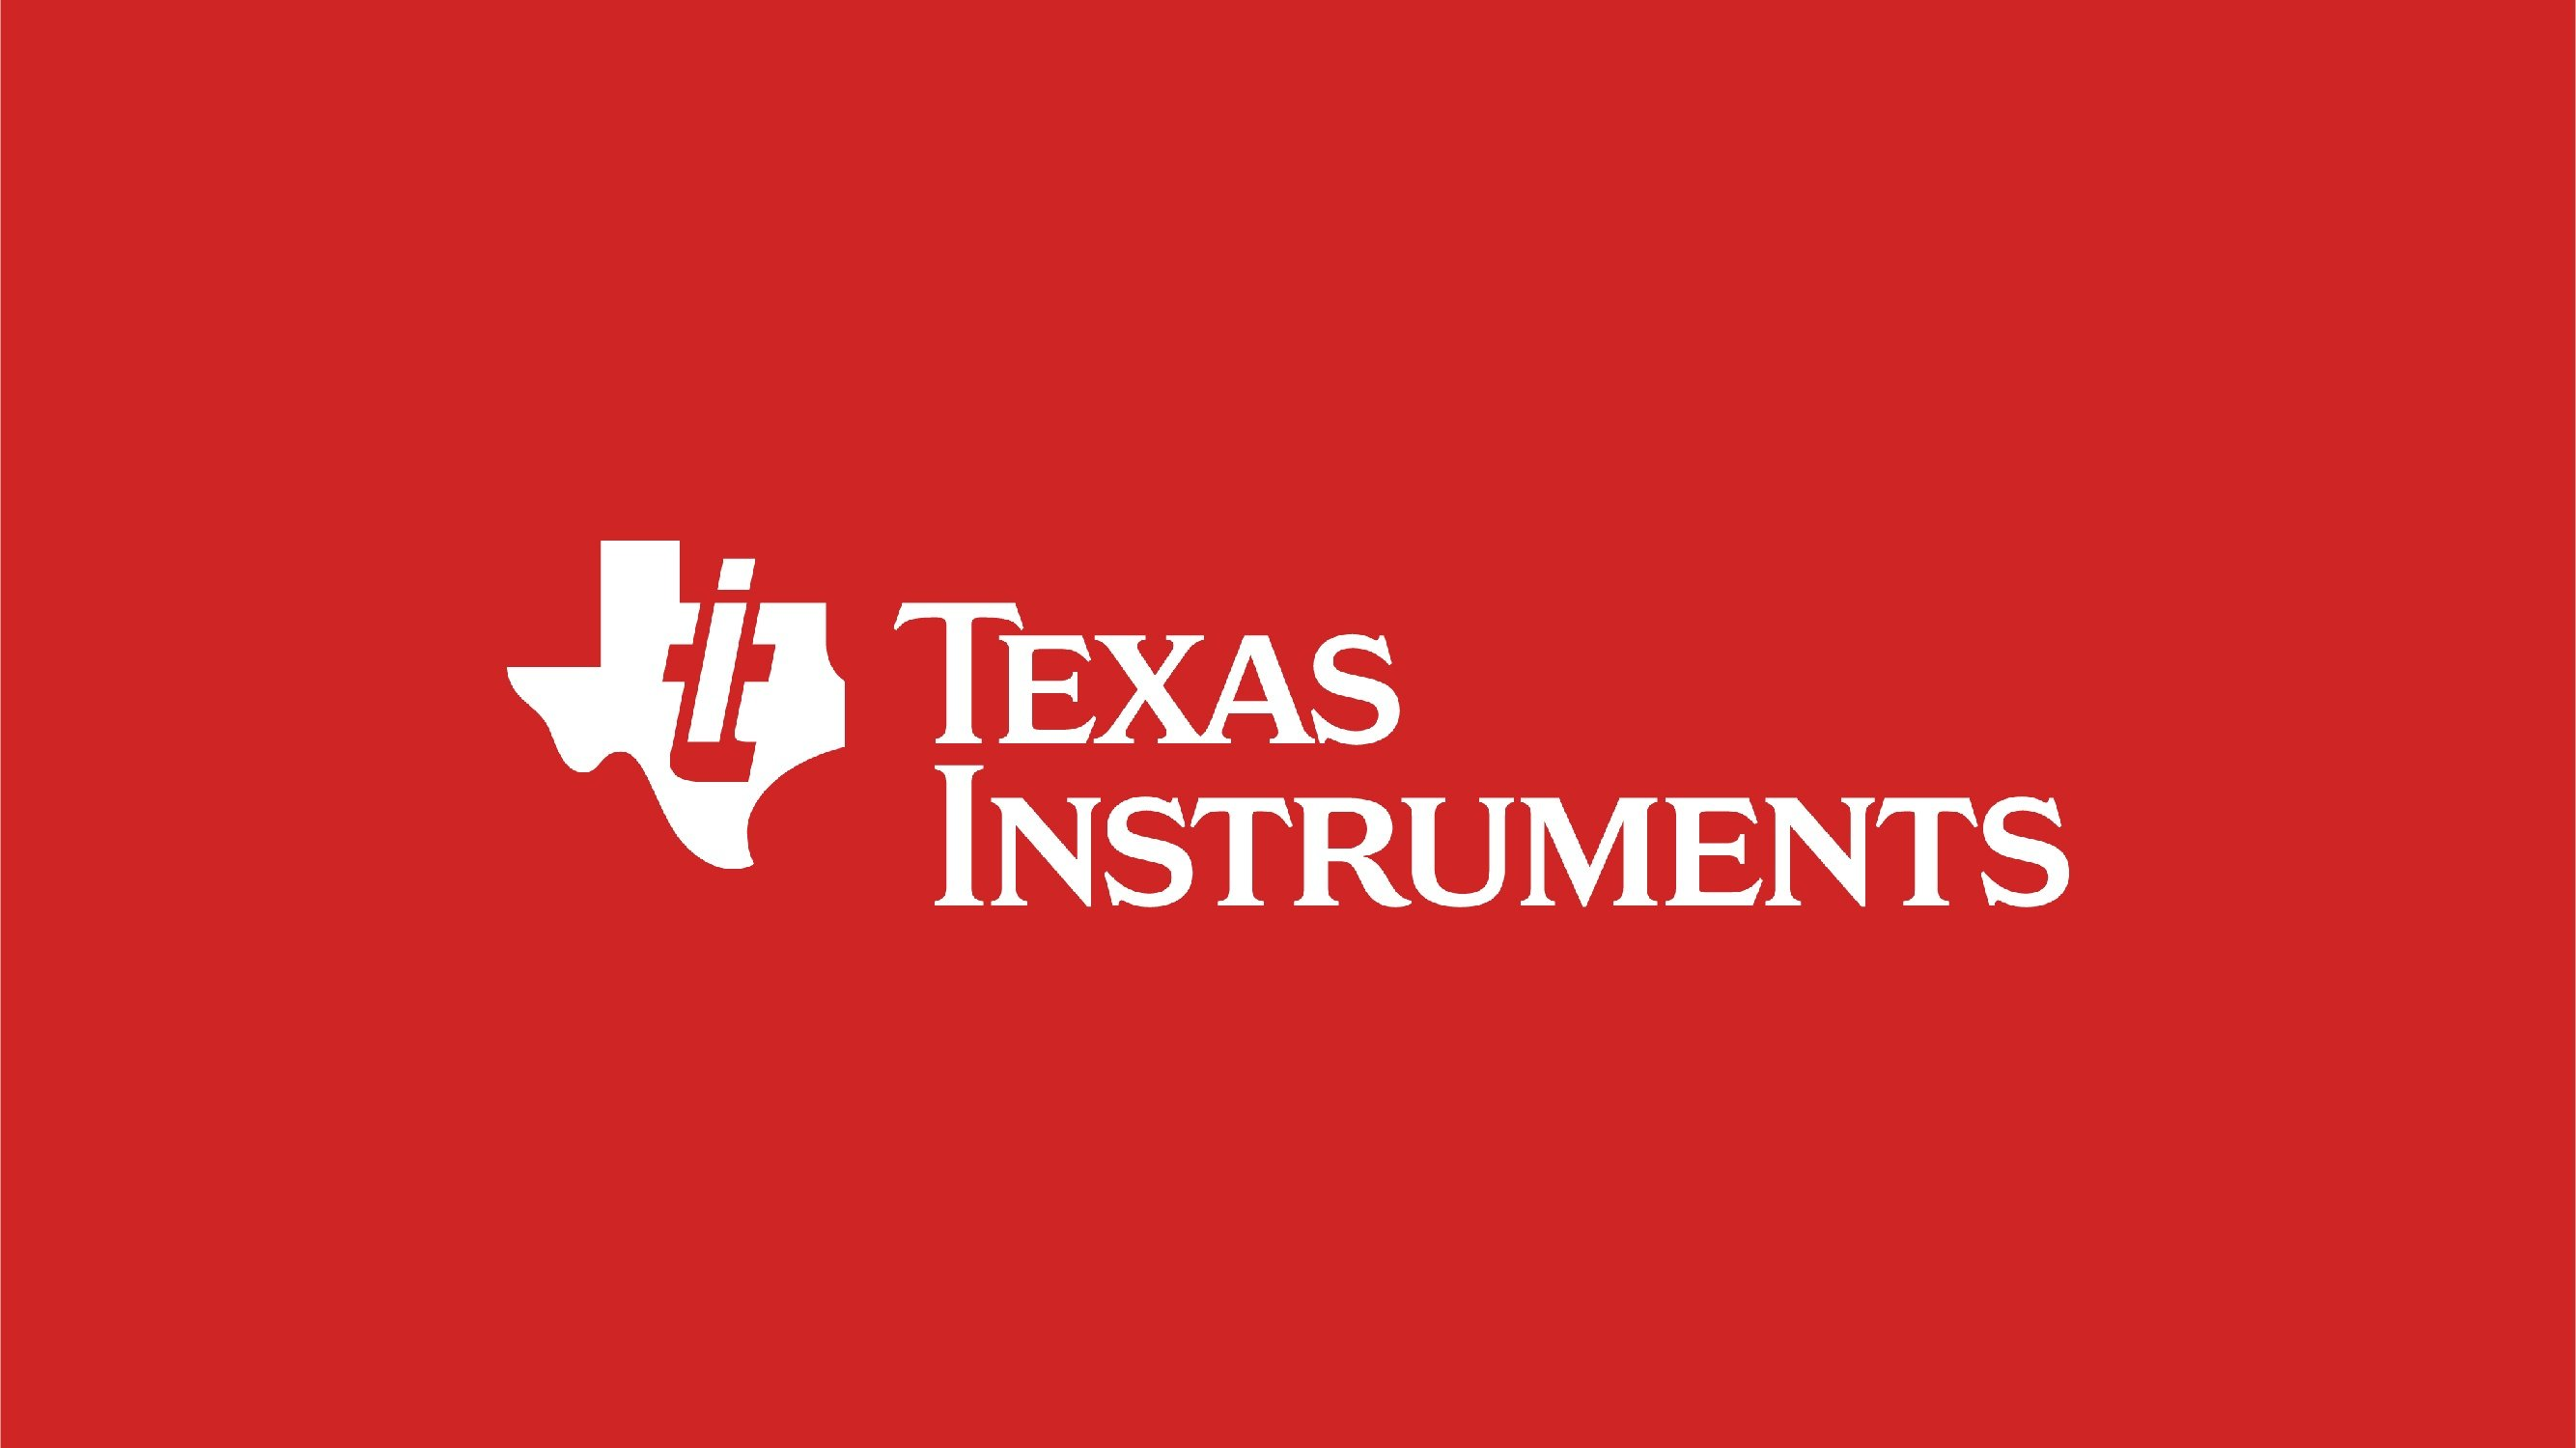 texasinstruments-06